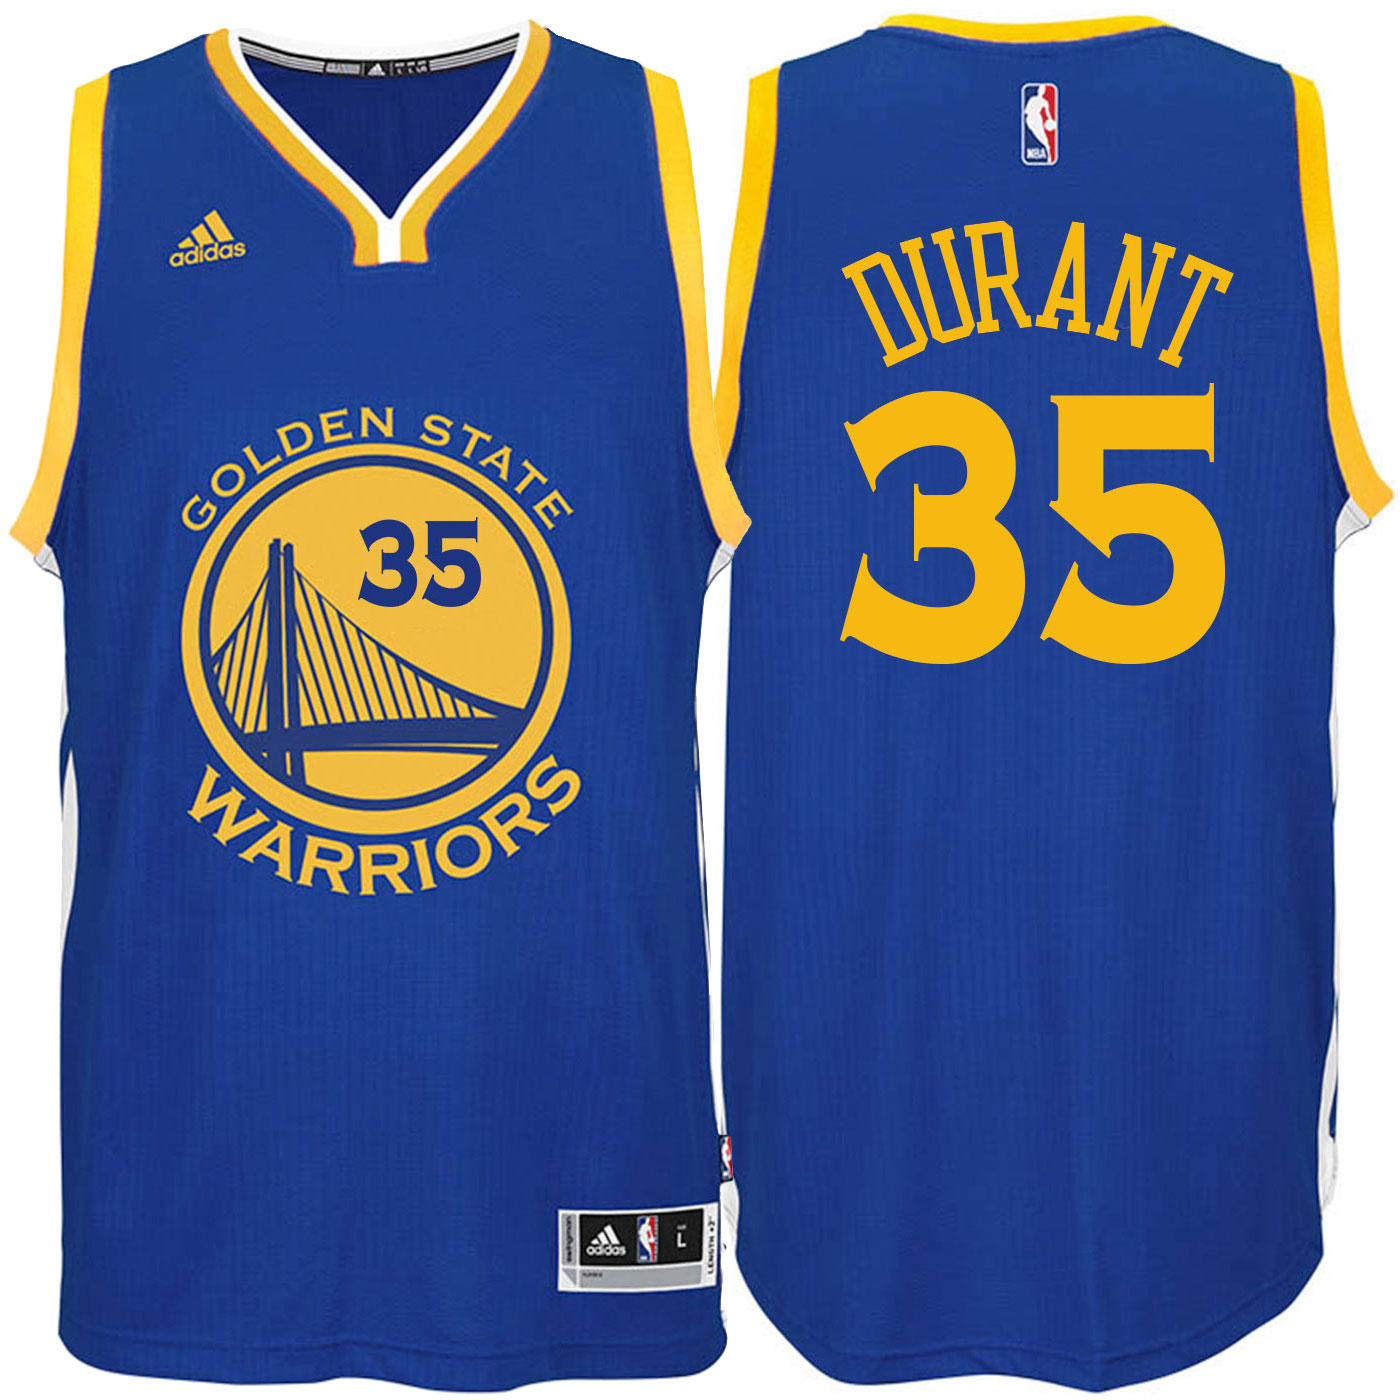 check out 9f05b 4ccff czech authentic kevin durant warriors jersey 89819 71067